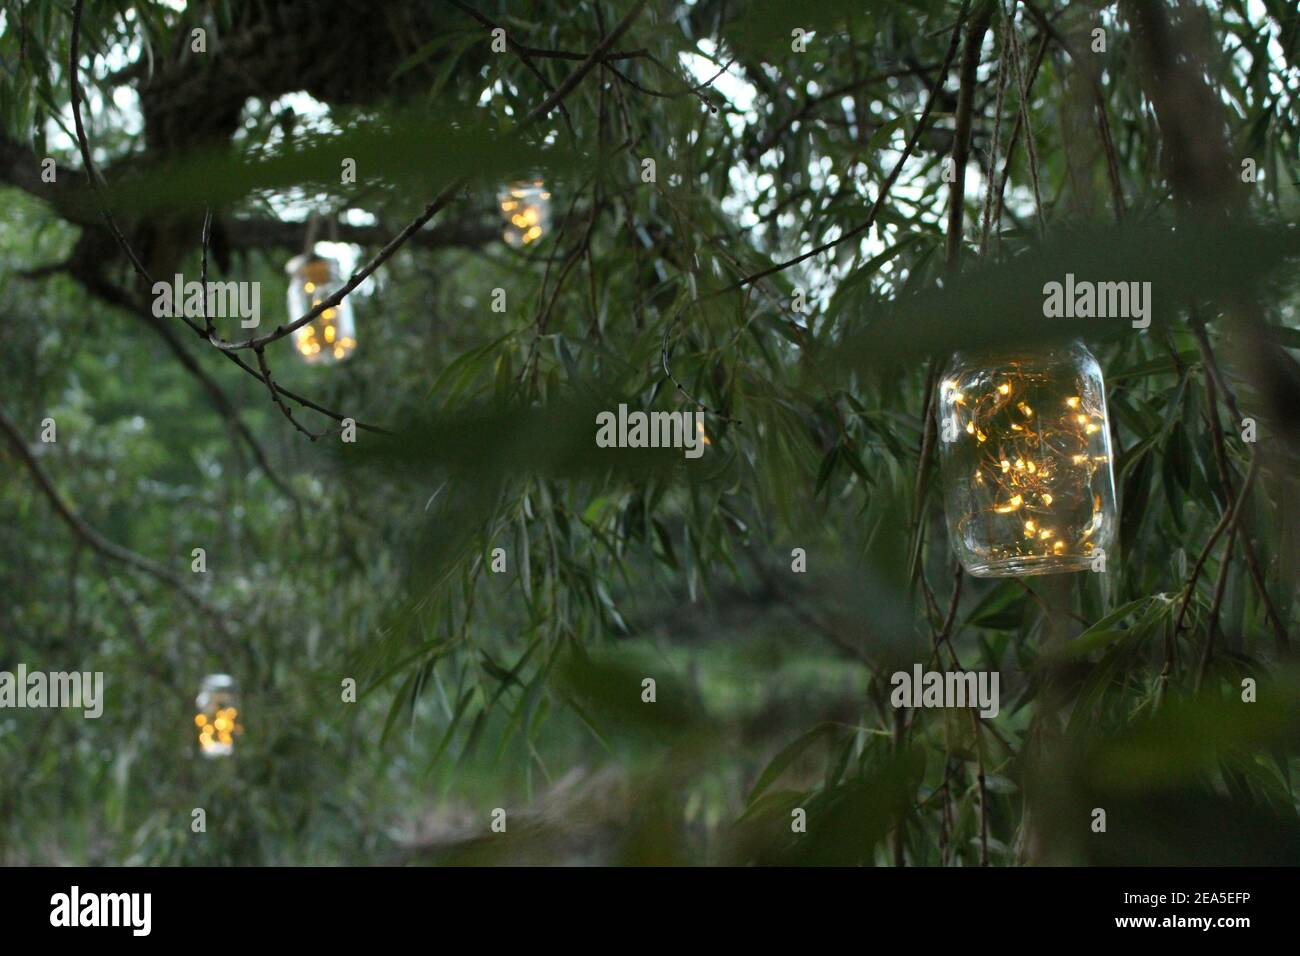 Fireflys High Resolution Stock Photography and Images   Alamy